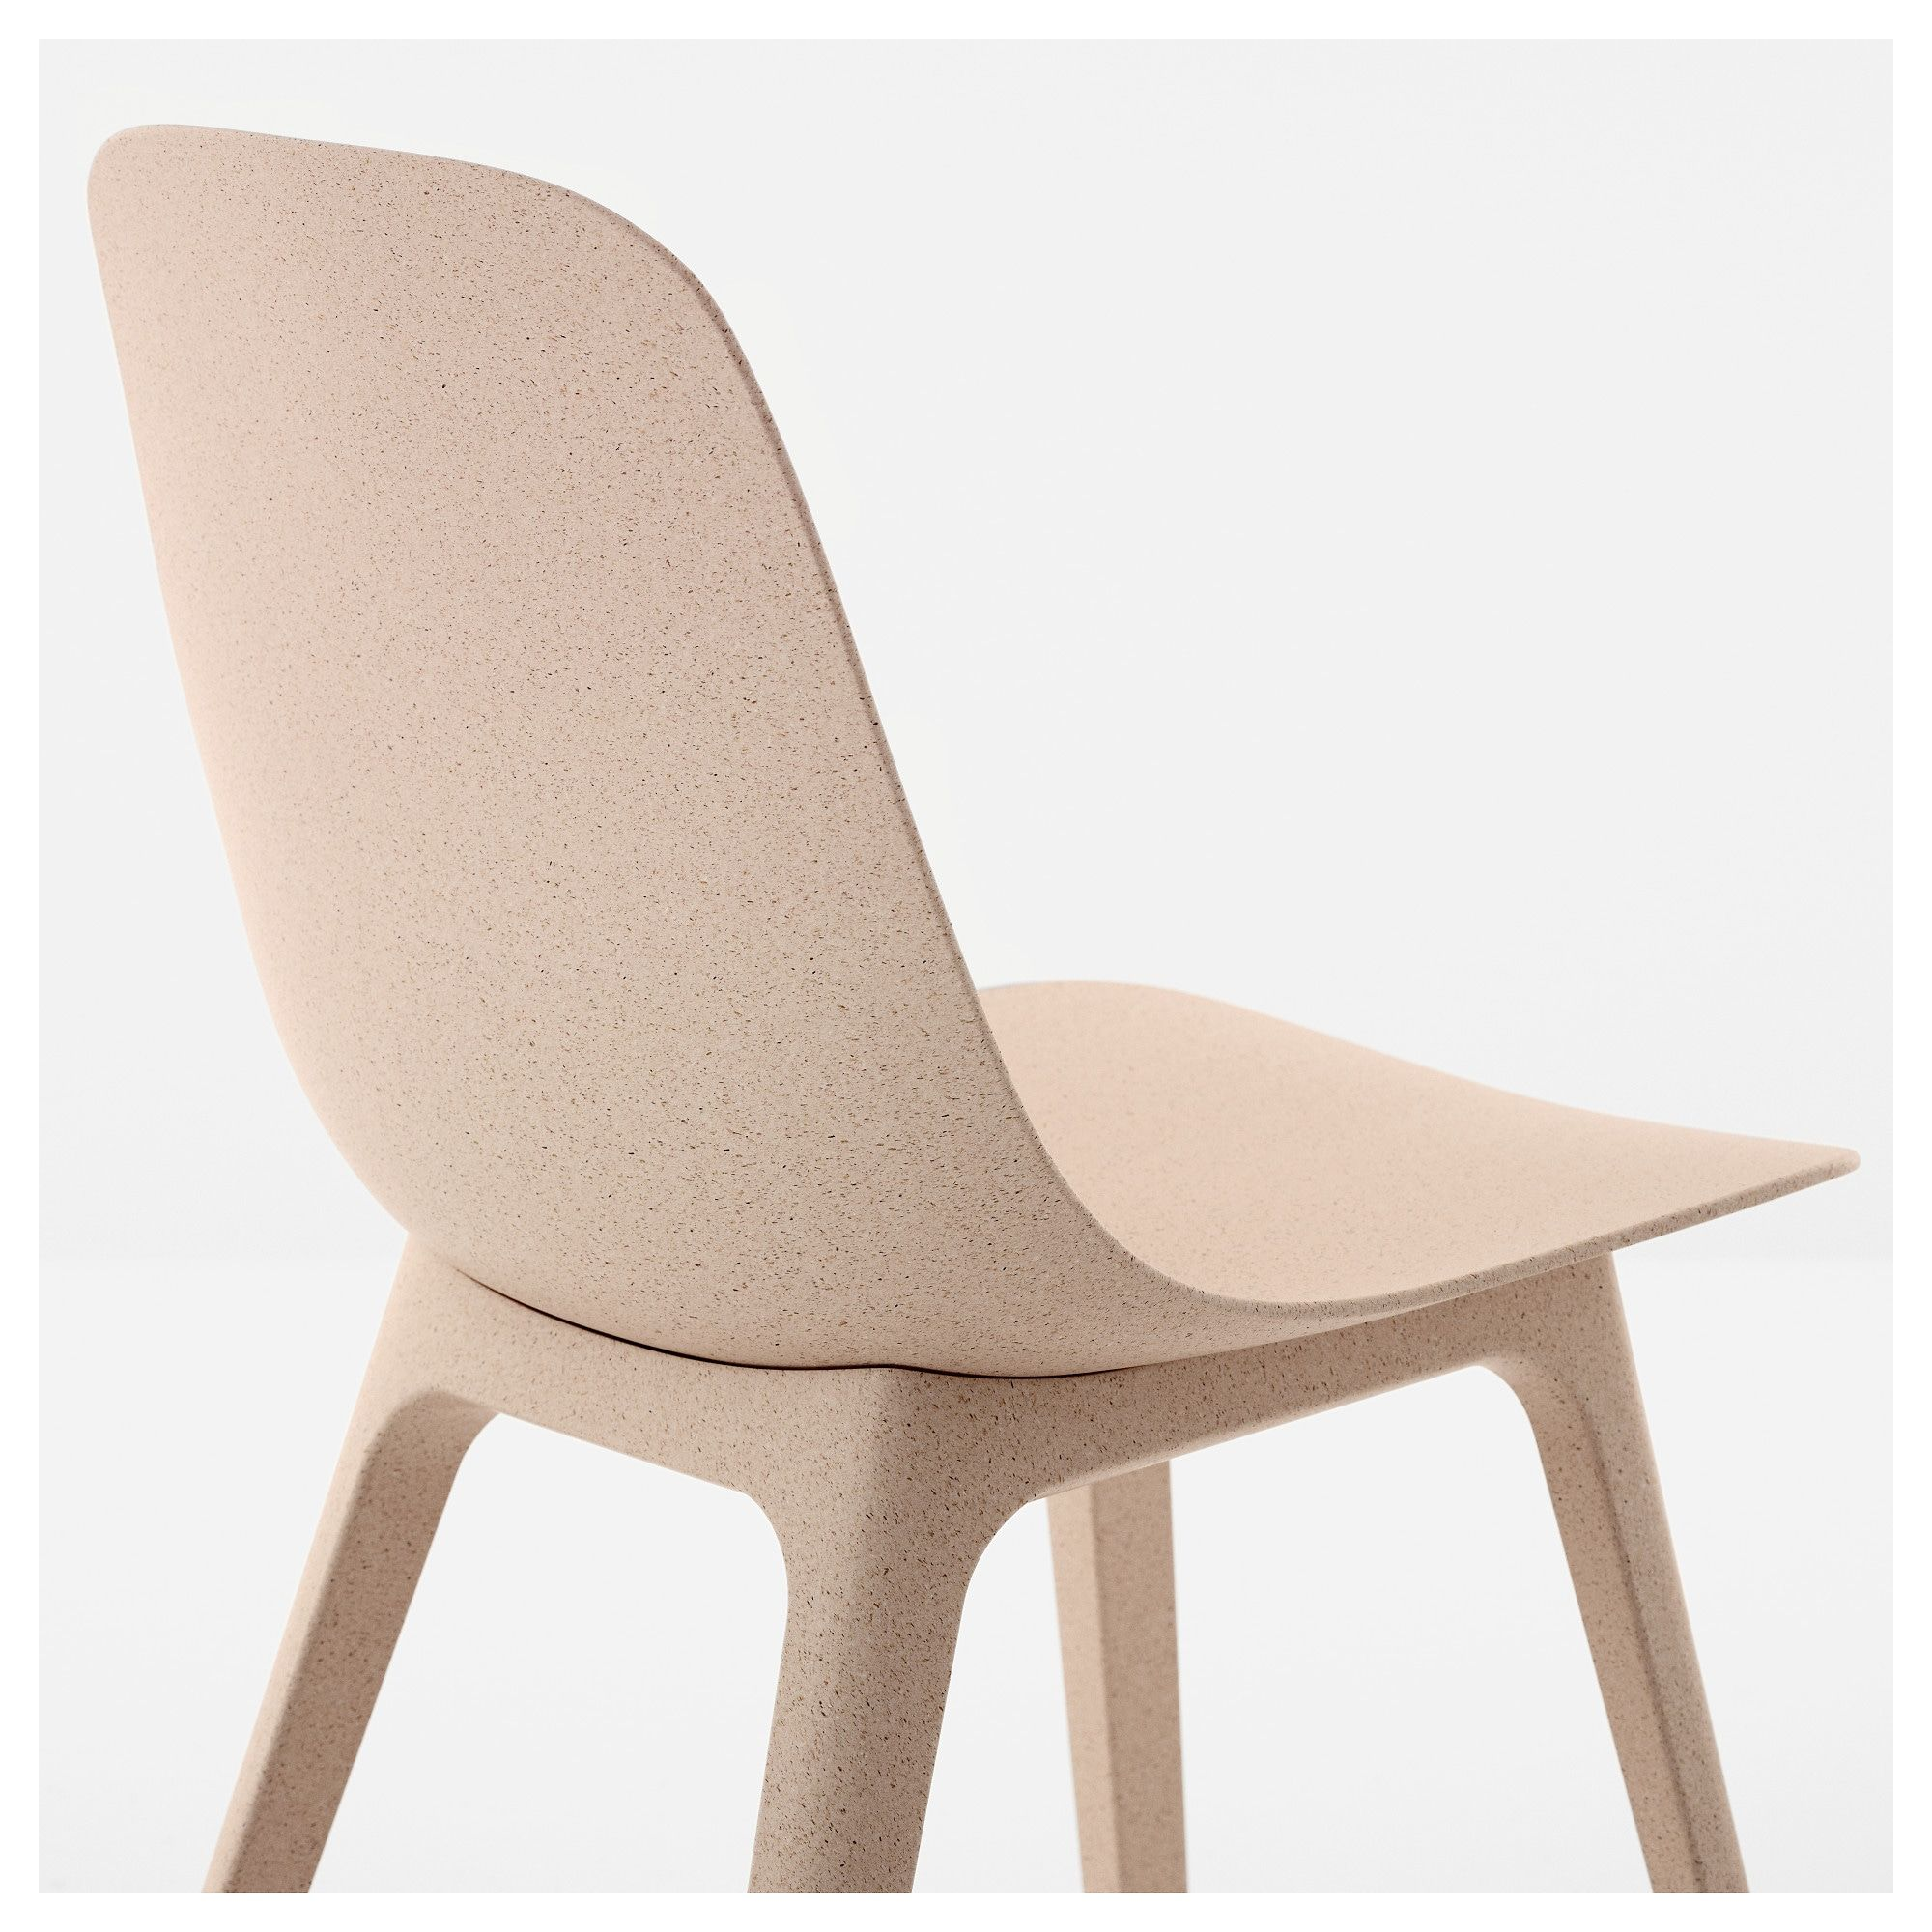 ODGER Chair white, beige Ikea chair, Chair, Beach